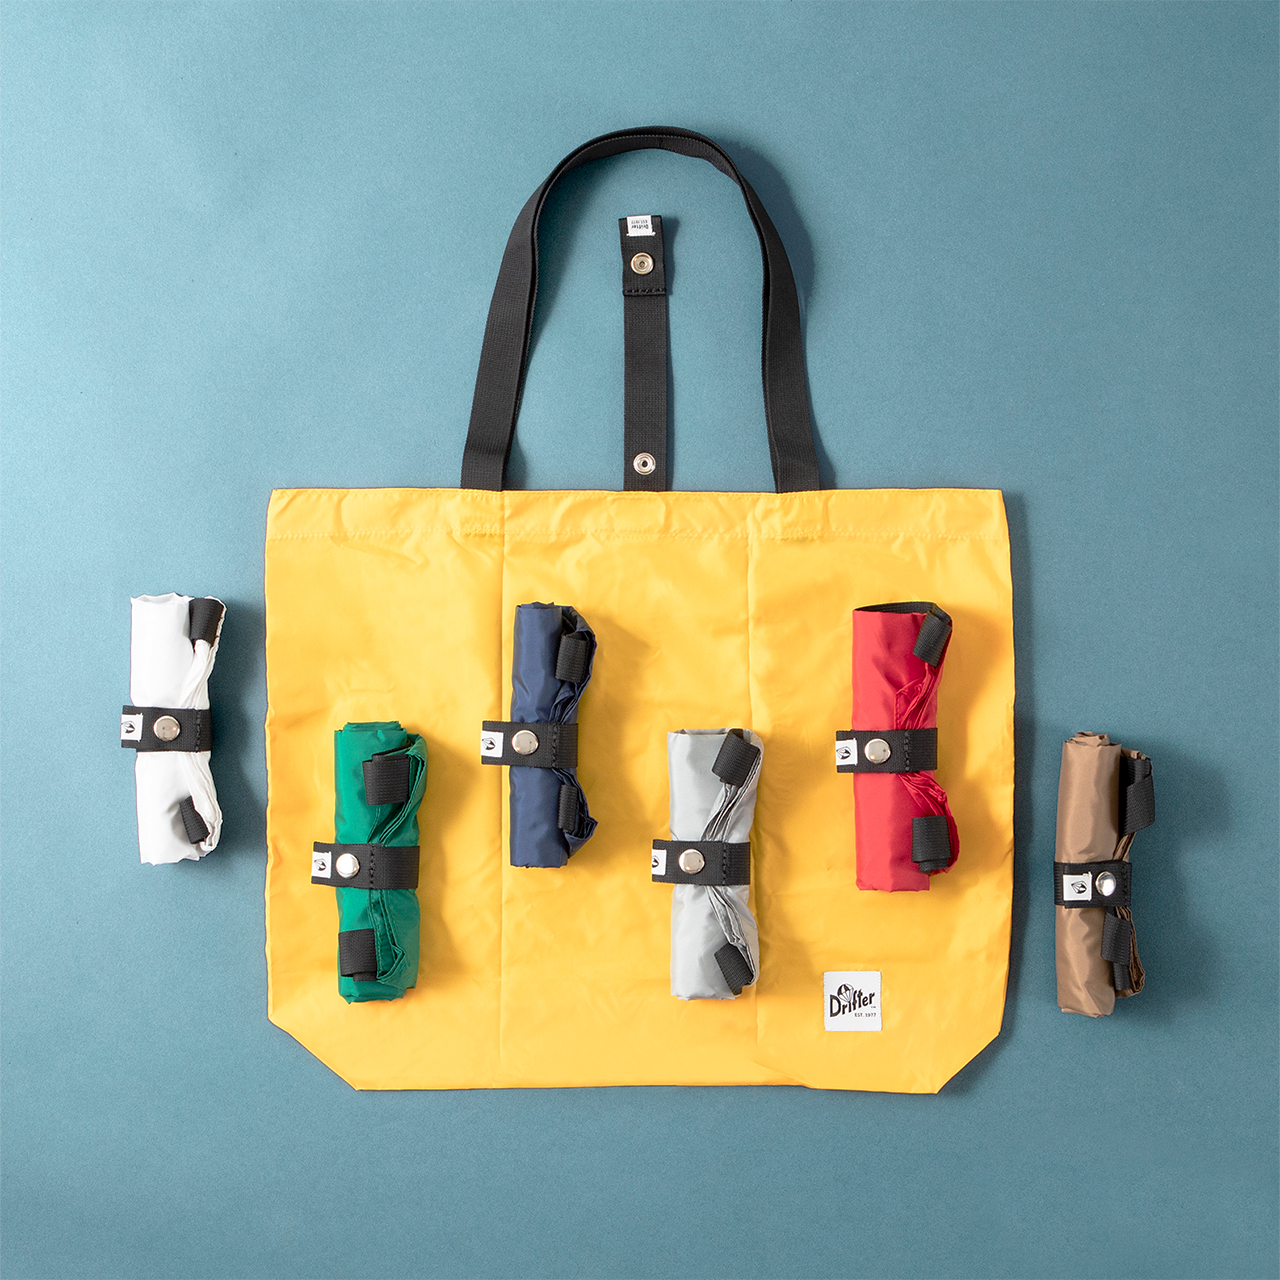 drifter_eco_tote_m